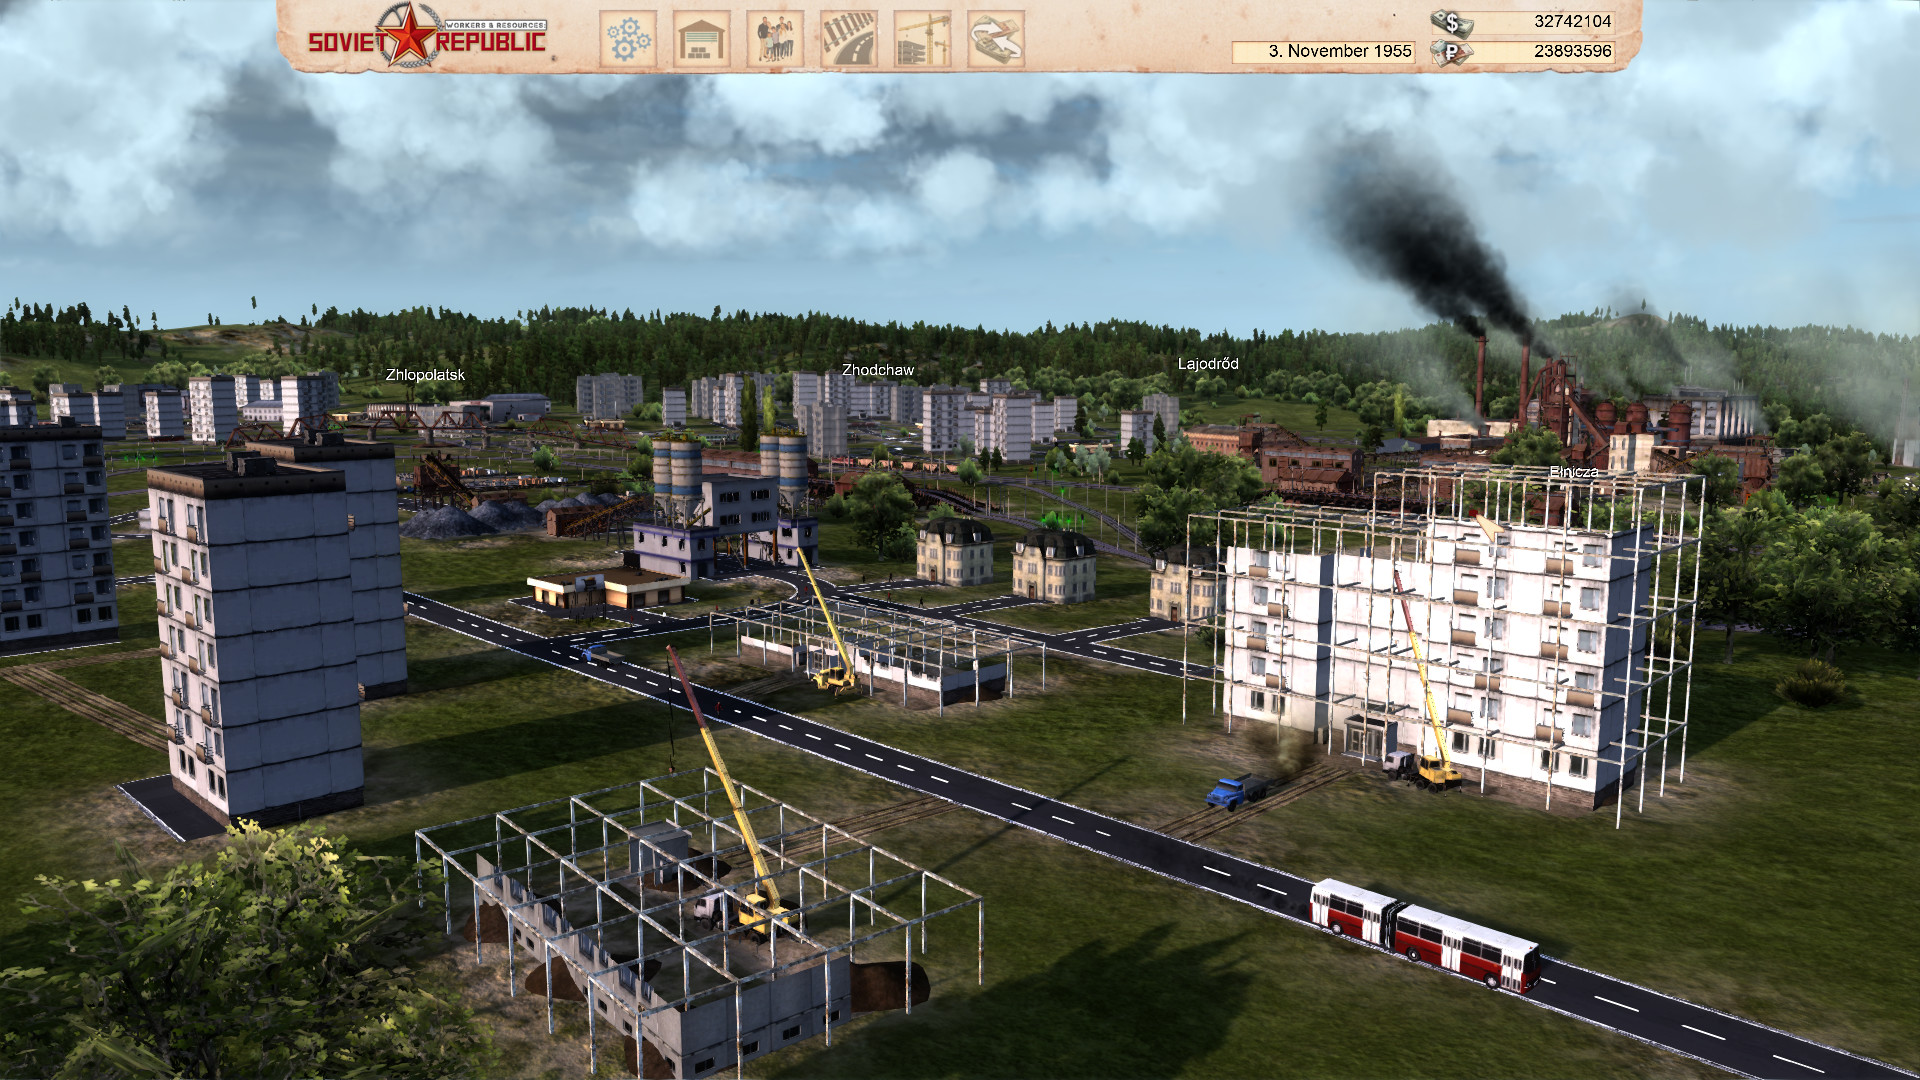 Workers & Resources: Soviet Republic Full İndir – Torrent